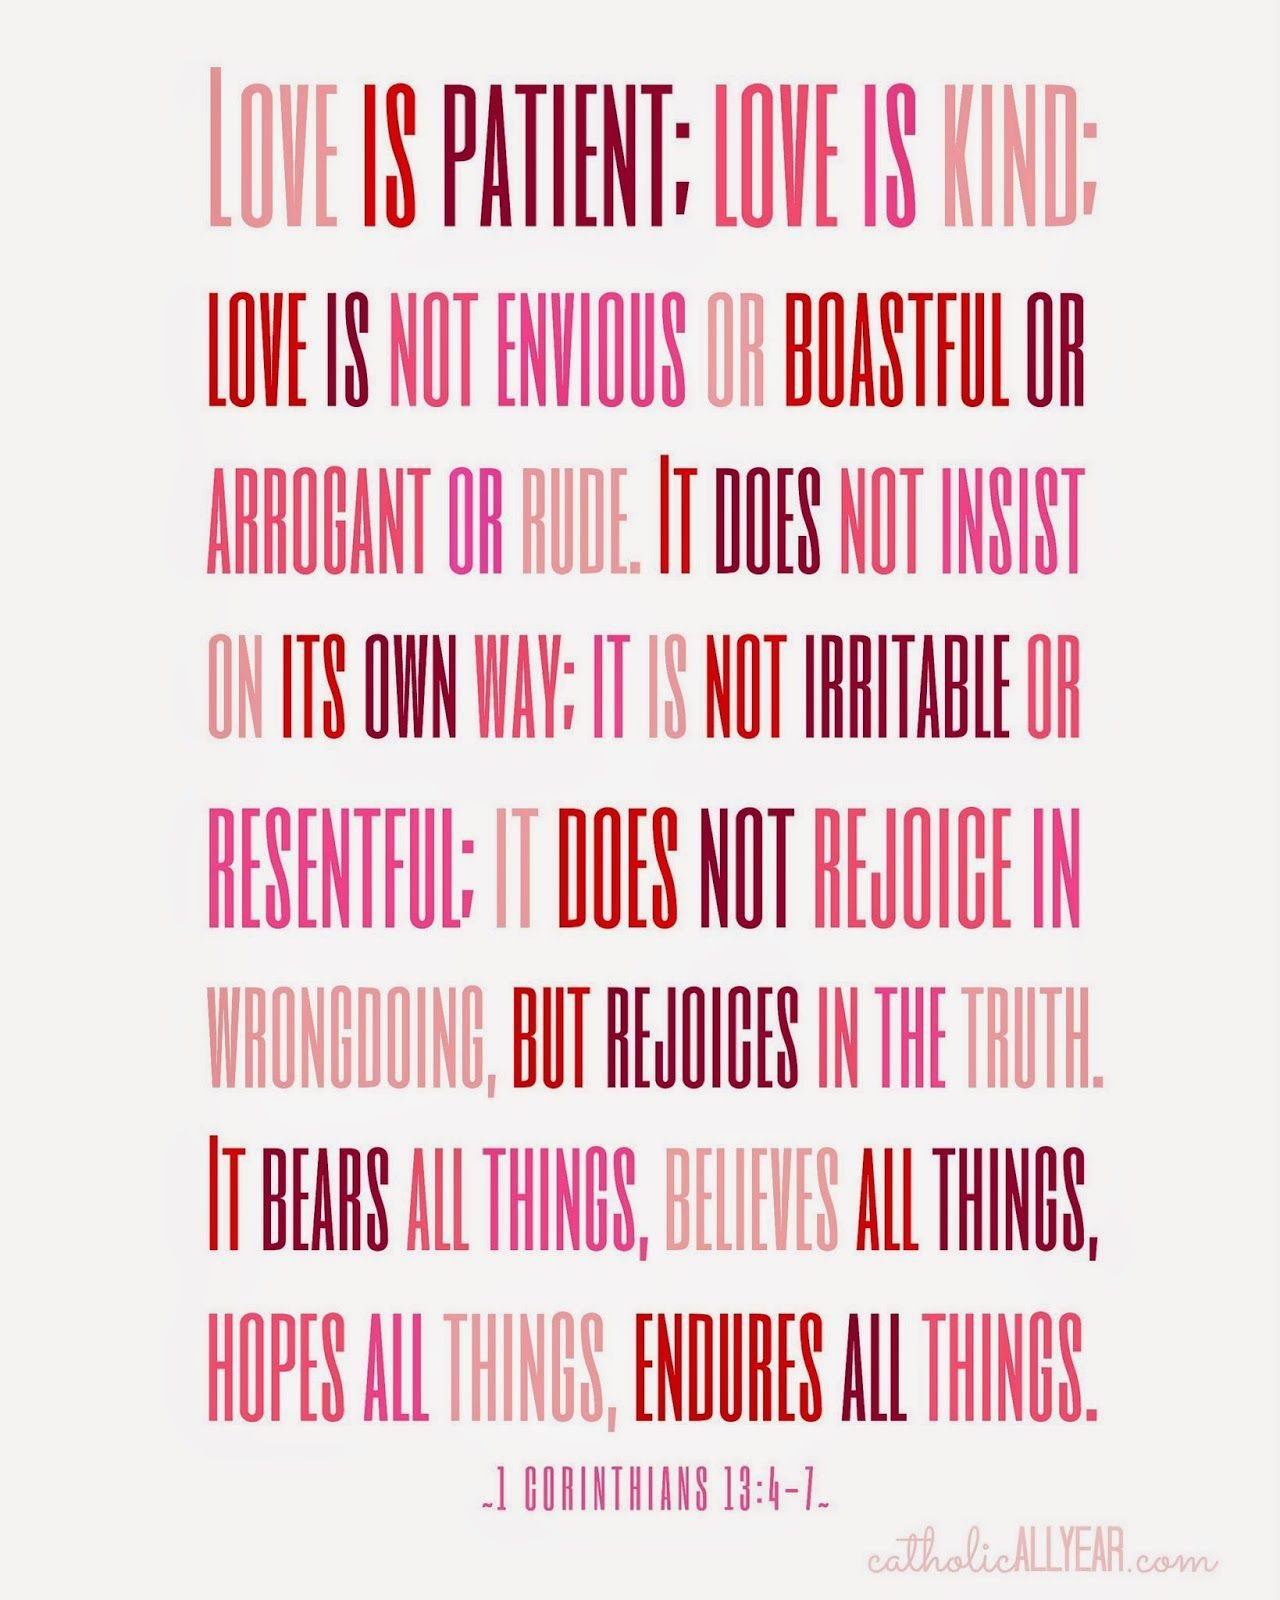 """Catholic All Year: Seven Free Printable Catholic Valentines """"love Is - Love Is Patient Love Is Kind Free Printable"""